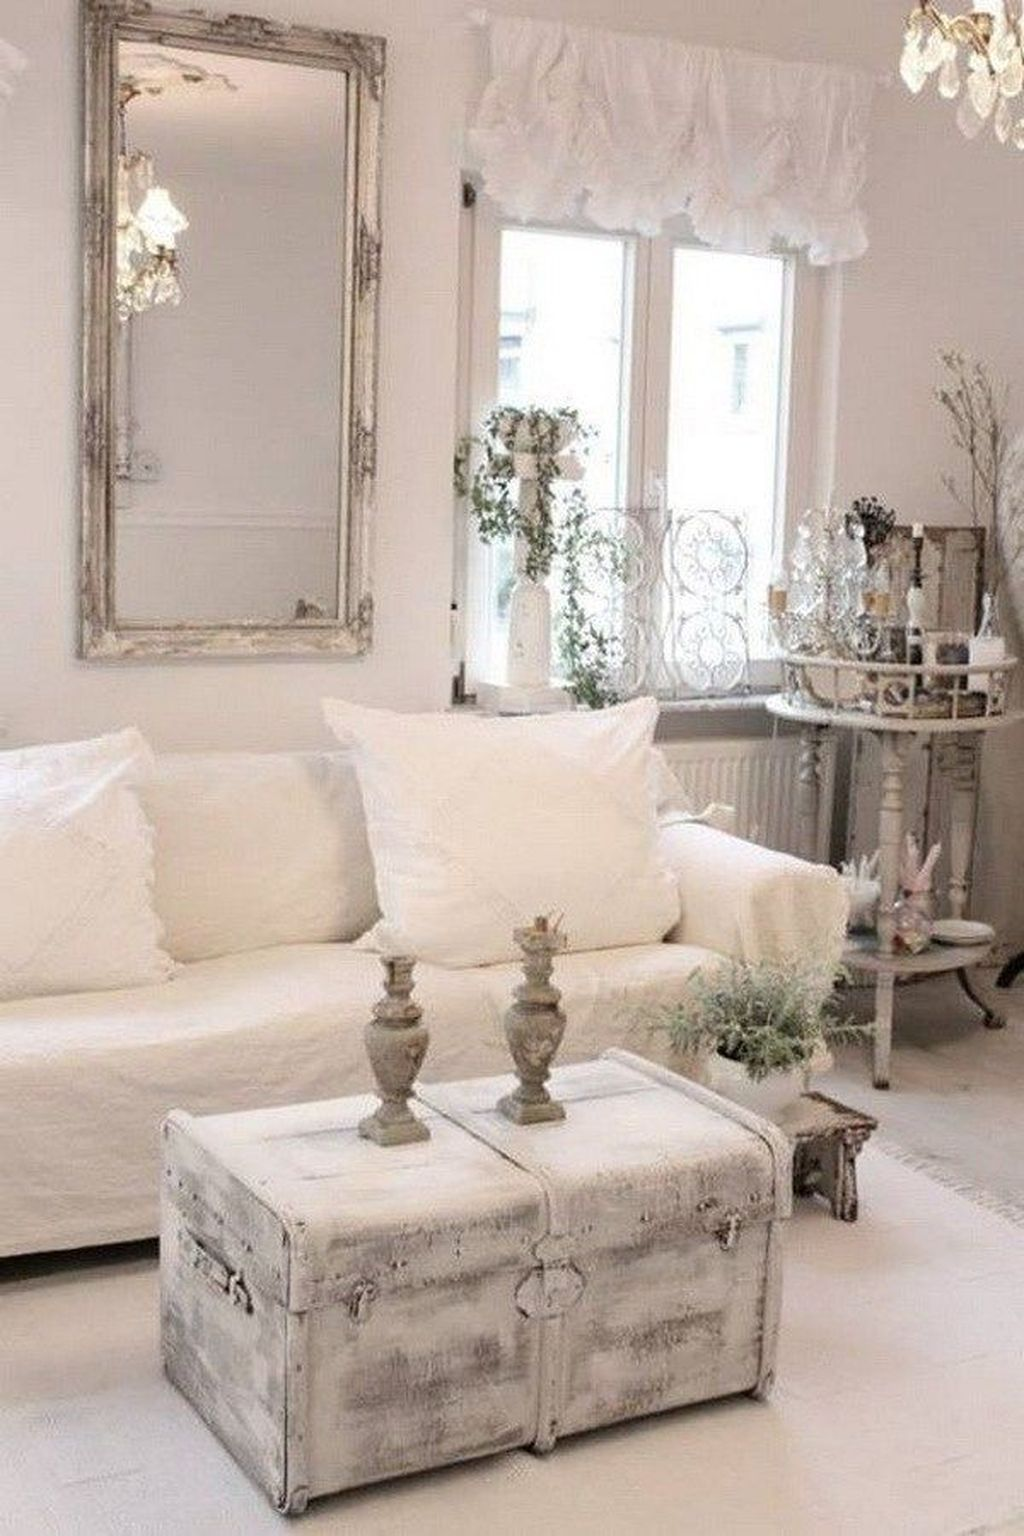 20+ Shabby Chic Living Room Design For Your Home